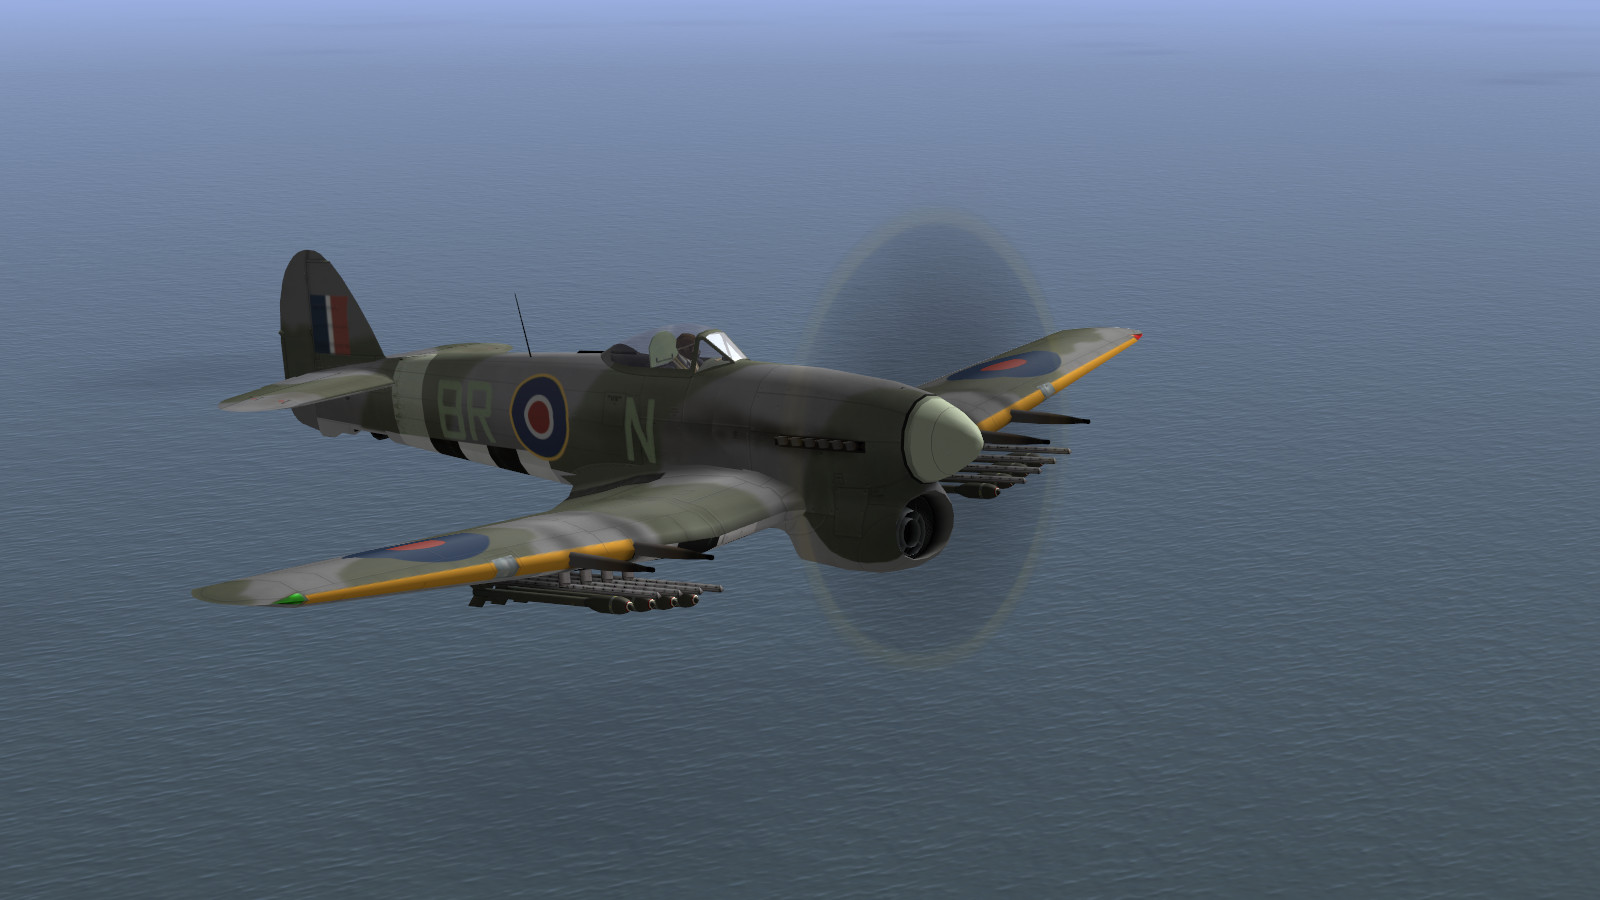 IL-2 + Dark Blue World, scene from Poltava's Typhoons over Normandy campaign